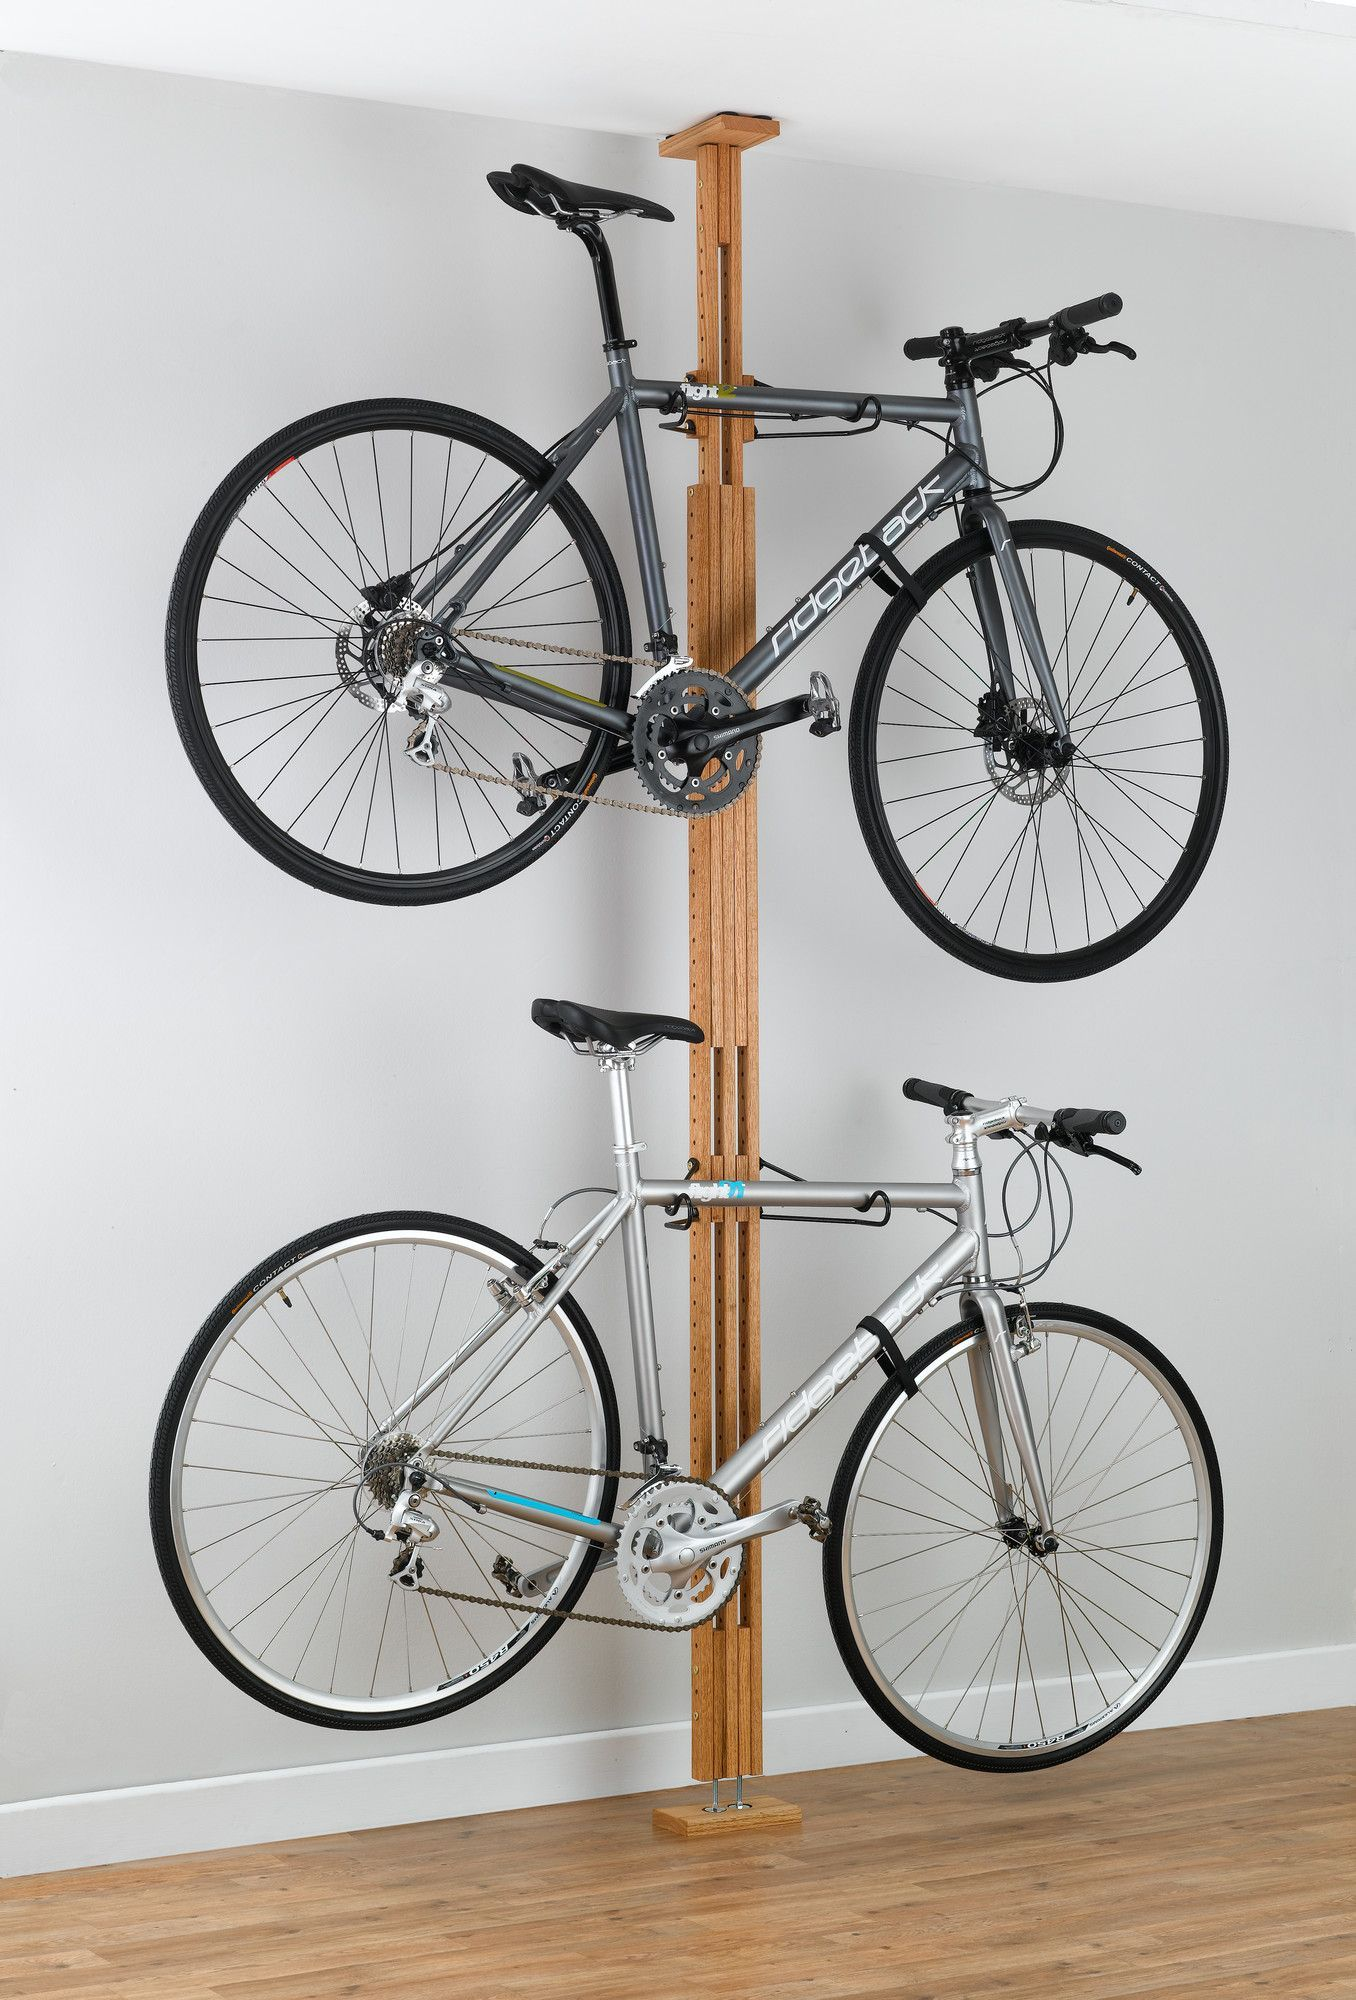 rack reviews bicycle edinburgh buy list the operative ceiling bike co com stand mainenance edinburghbicycle tools from to floor cleaning revolution